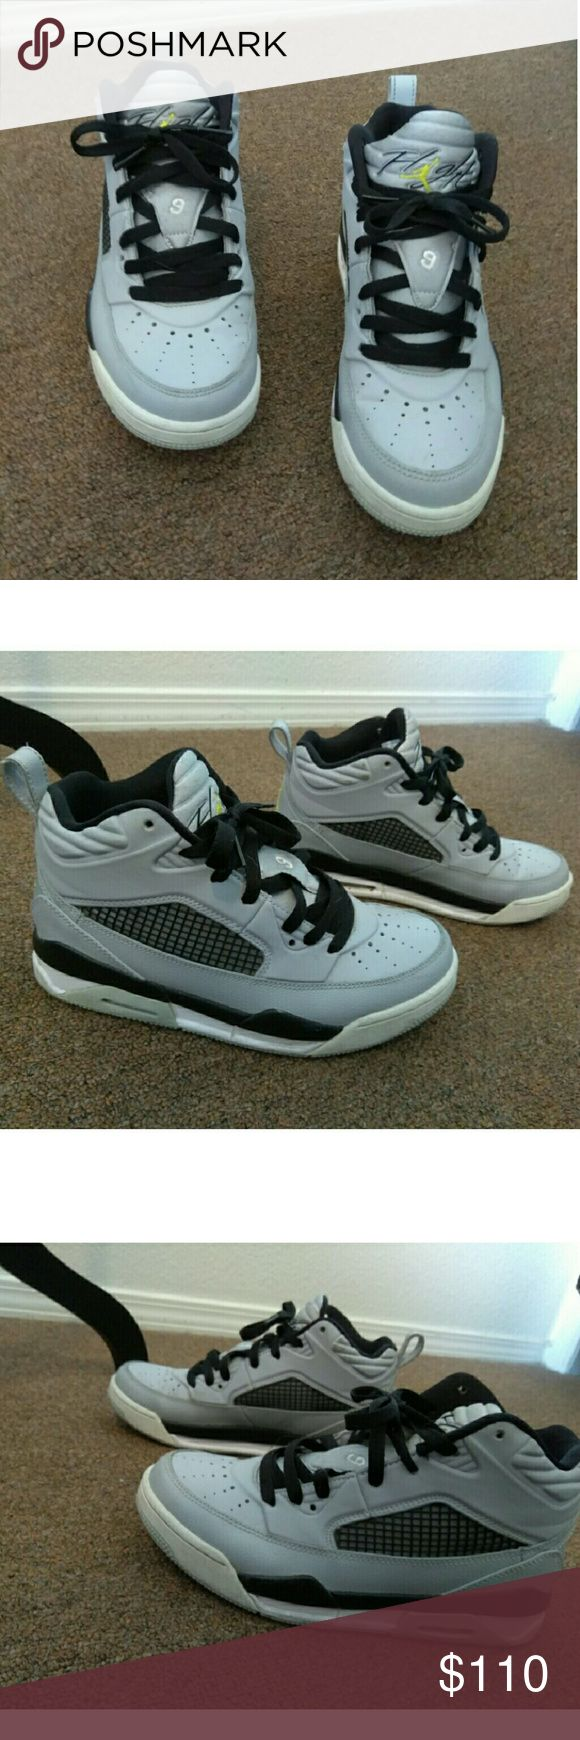 Gray Black White Nike Air Jordan Flight 9 Gray Black and white Nike Air Jordan Flight 9 . Has slight discoloration dirt on bottom and lower white area. Nothing too crazy as shown in pictures.  Size 5.5 Youth which is 7.5 in Women's. Jordan Shoes